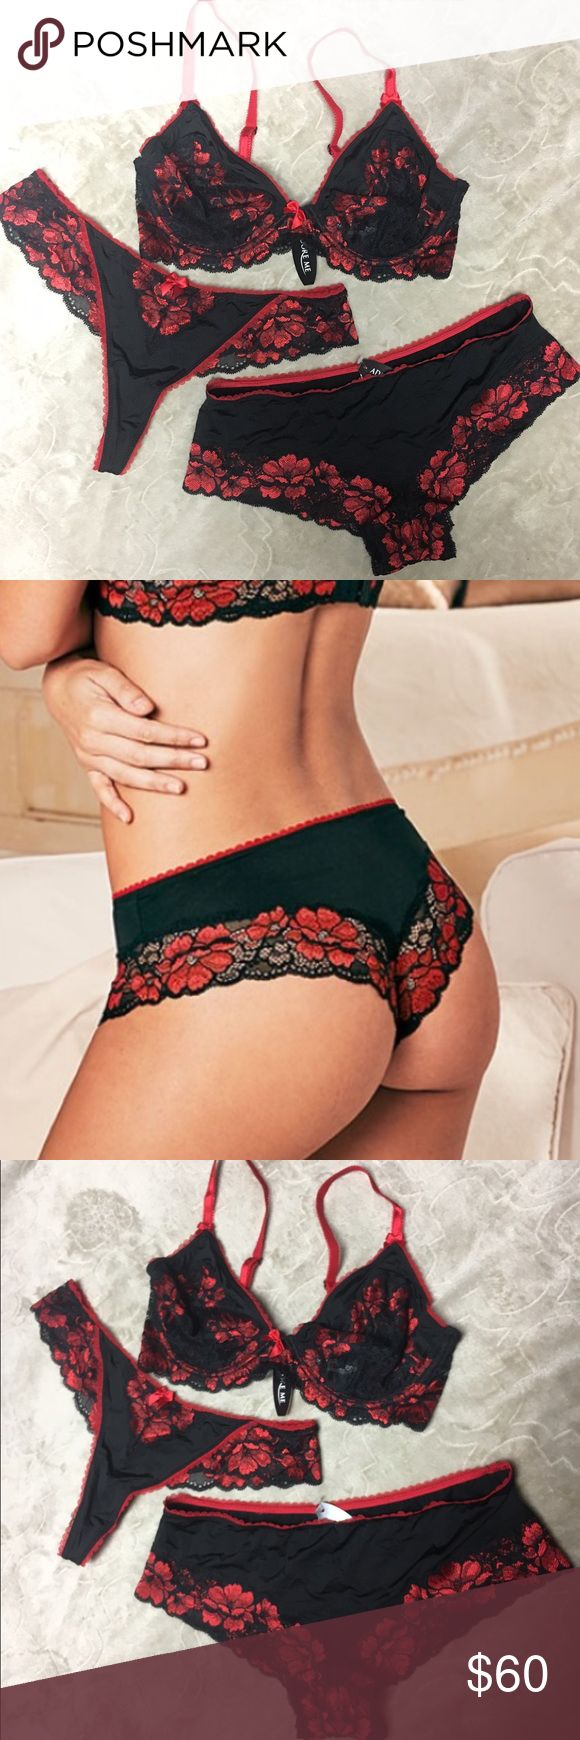 Sexy Lingerie set❤️Adore Me 34D/medium red/black ❤️Adore Me❤️ Brand New with tags Lingerie set! Black and red. Bra, panty and thong! Bra is a 34 D lined, underwire, and unpadded with lace embroidered. Thong and panty are both satin with lace trimmings. Gorgeous look and feels amazing. Adore Me Intimates & Sleepwear Bras